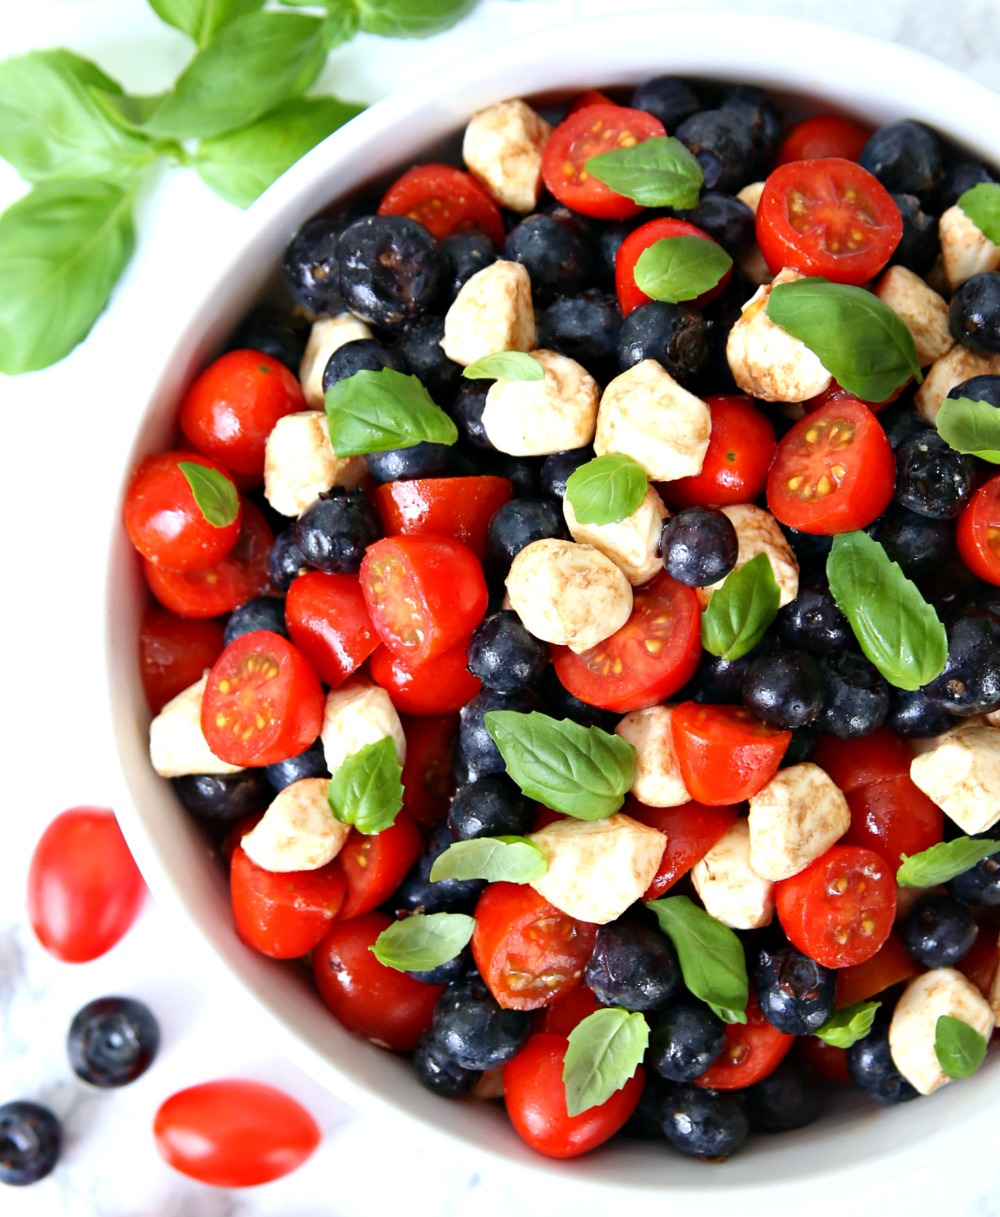 Blueberry Caprese Salad 4th of July Salad